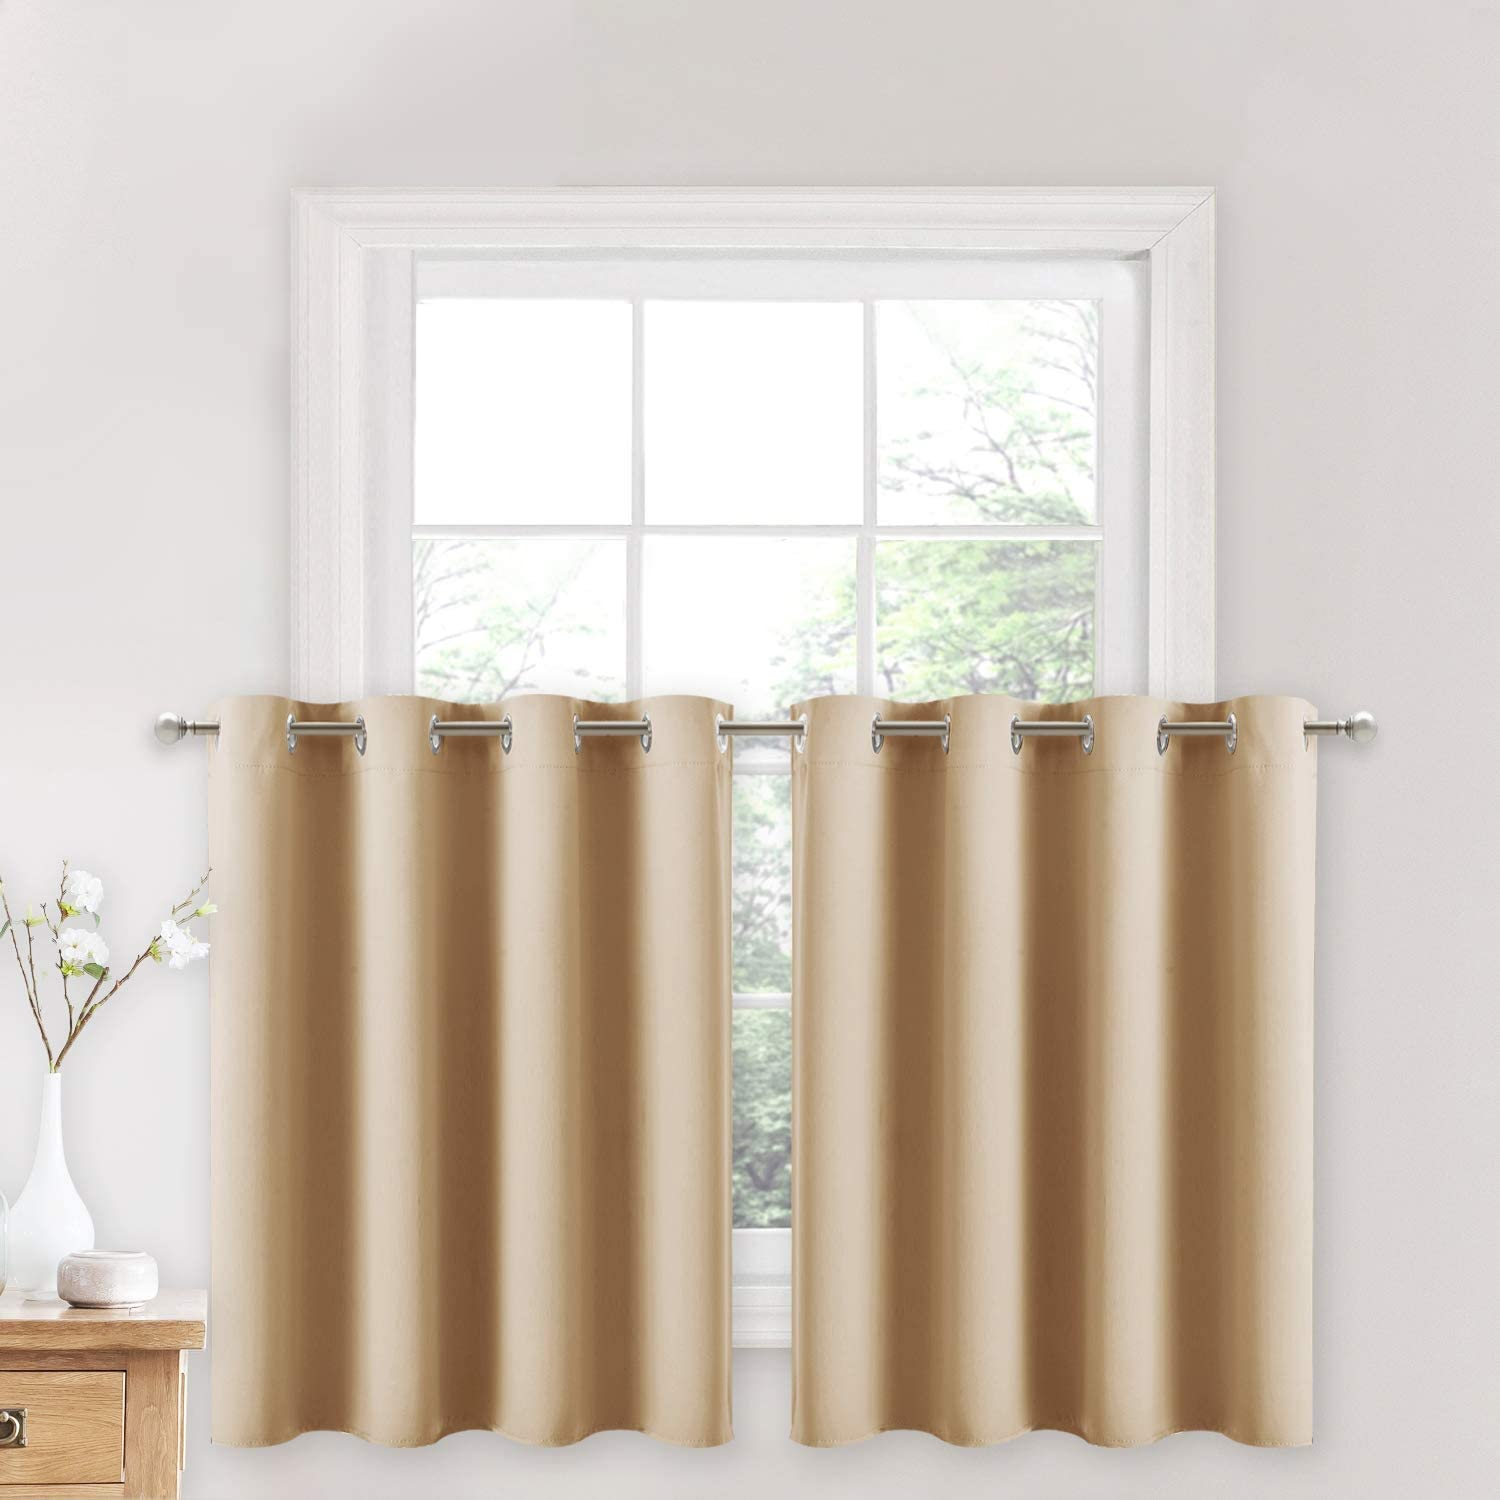 Grommet kitchen curtain